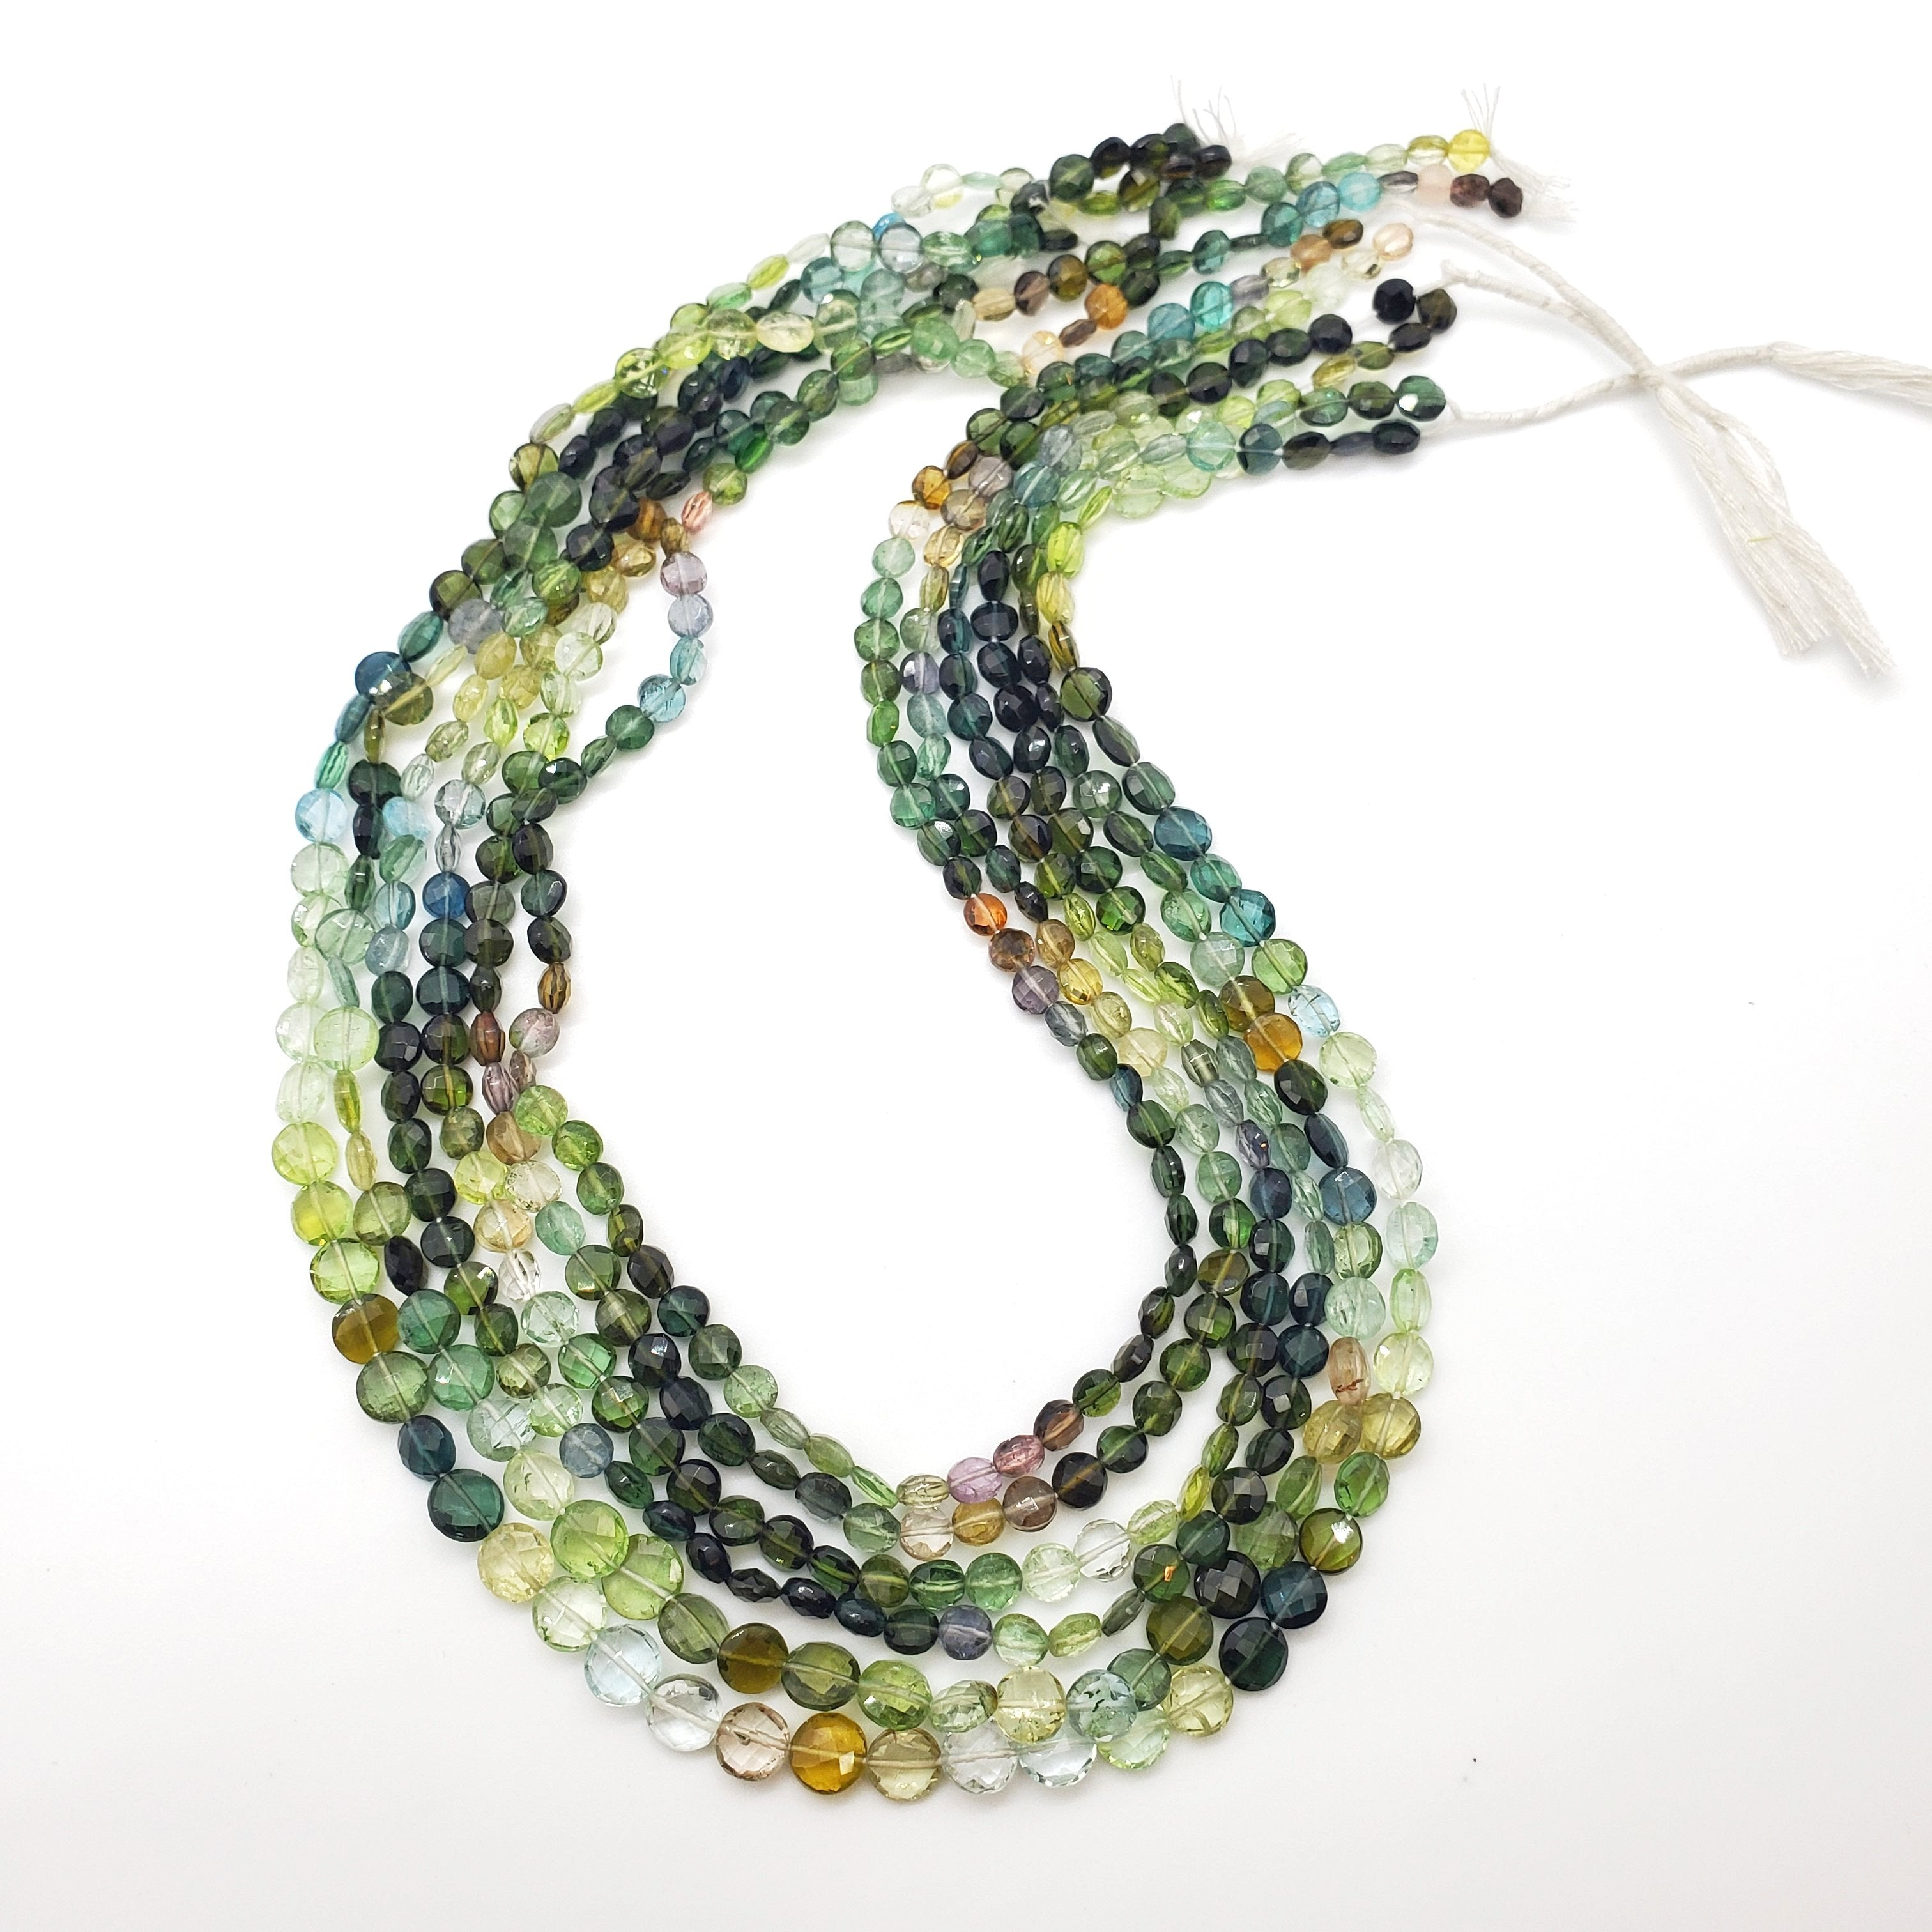 Blue / Green Tourmaline Faceted Coin Shape Beads